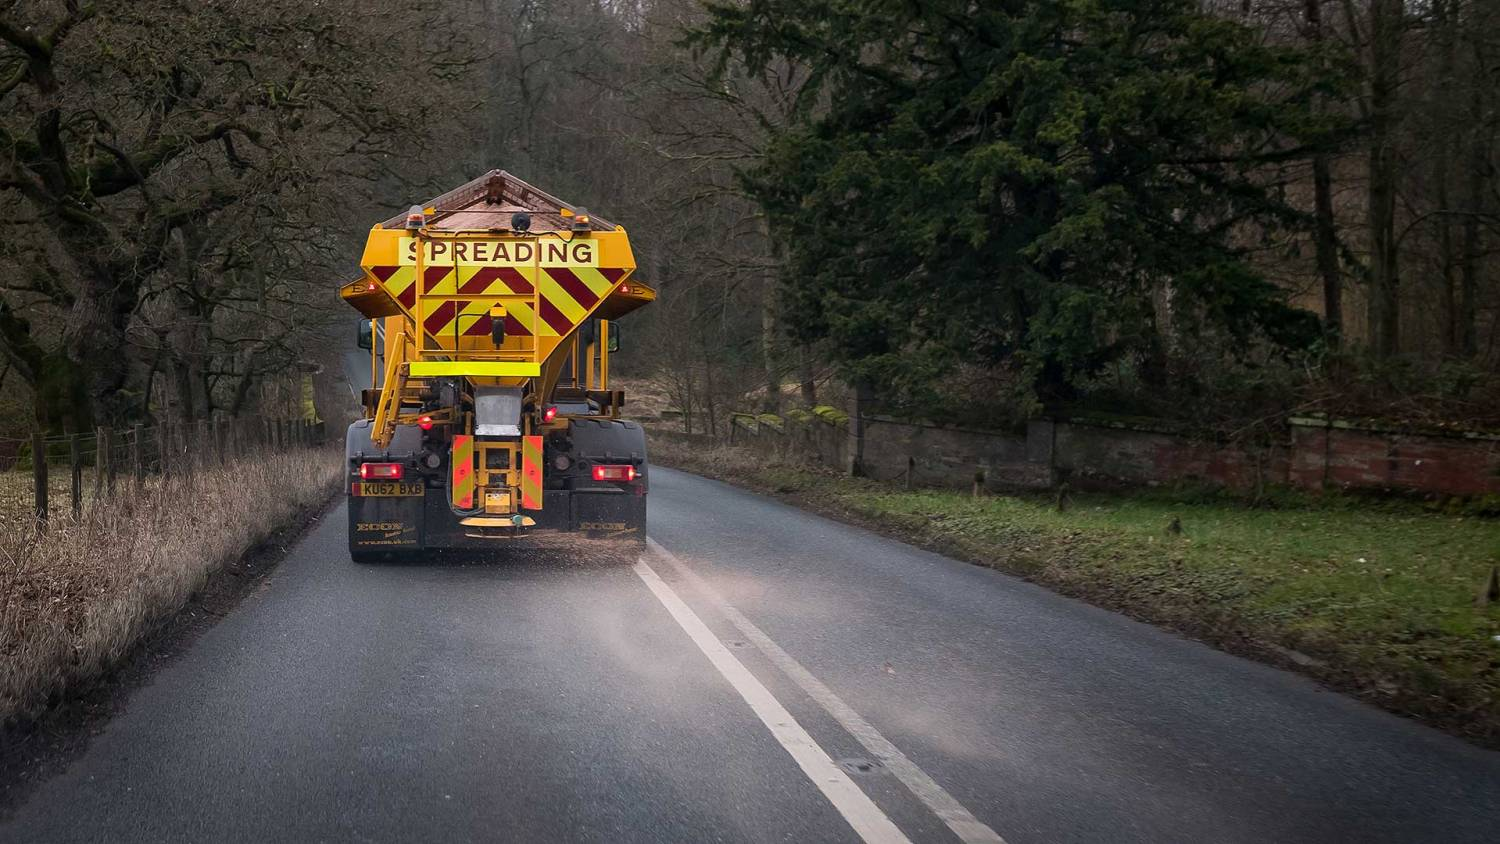 Road gritter spreading salt on a British road